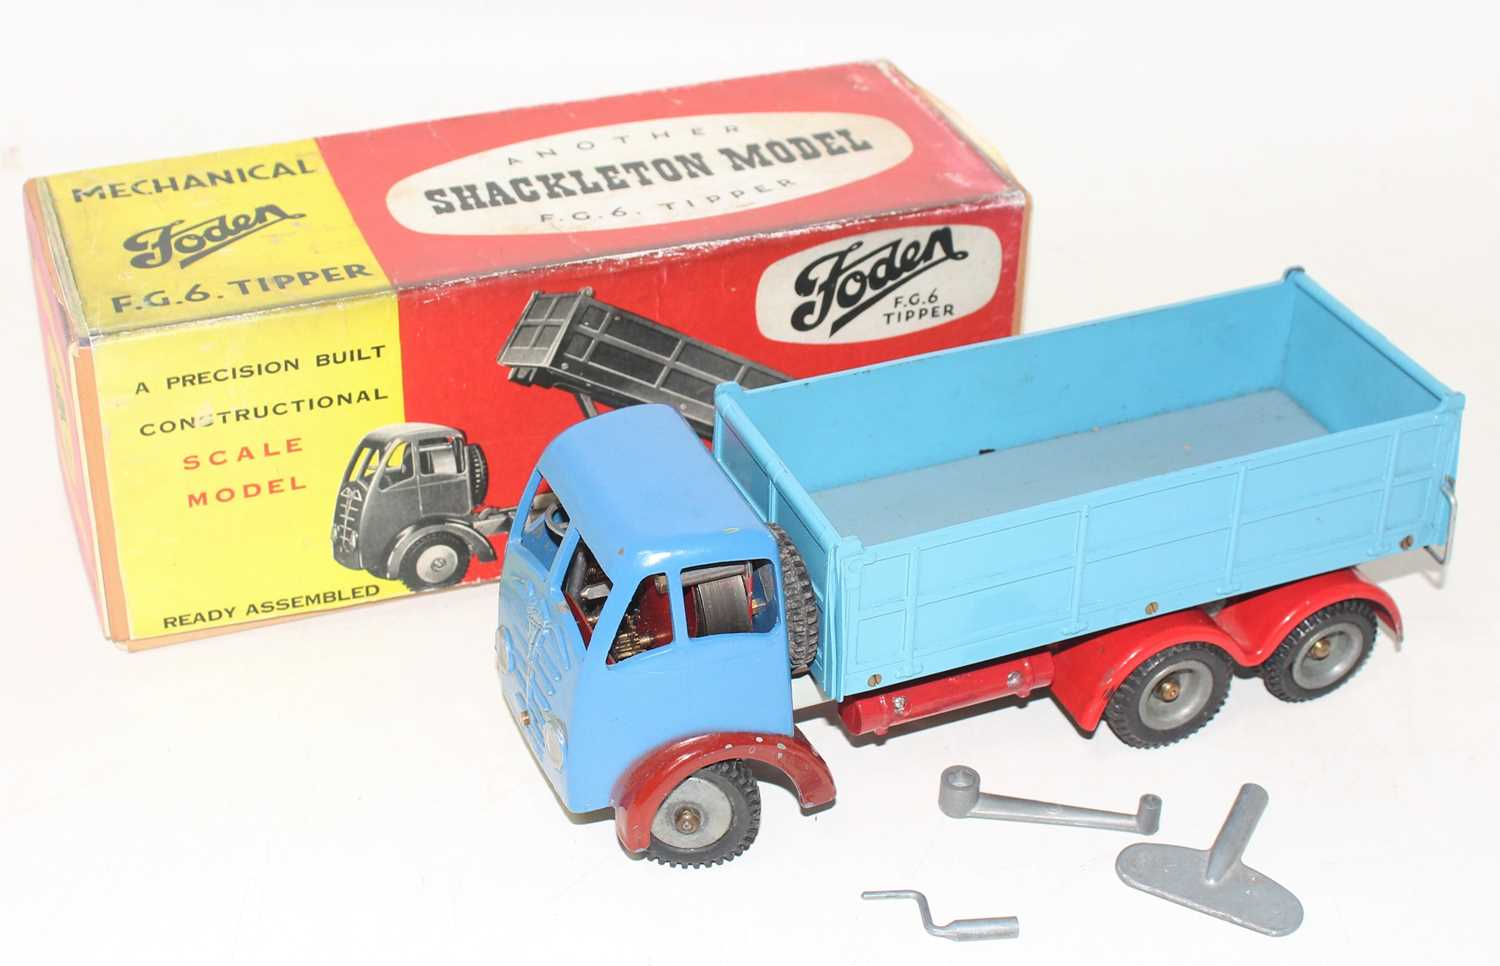 A Shackleton Models model of a Foden FG6 tipper truck comprising of two-tone blue body with